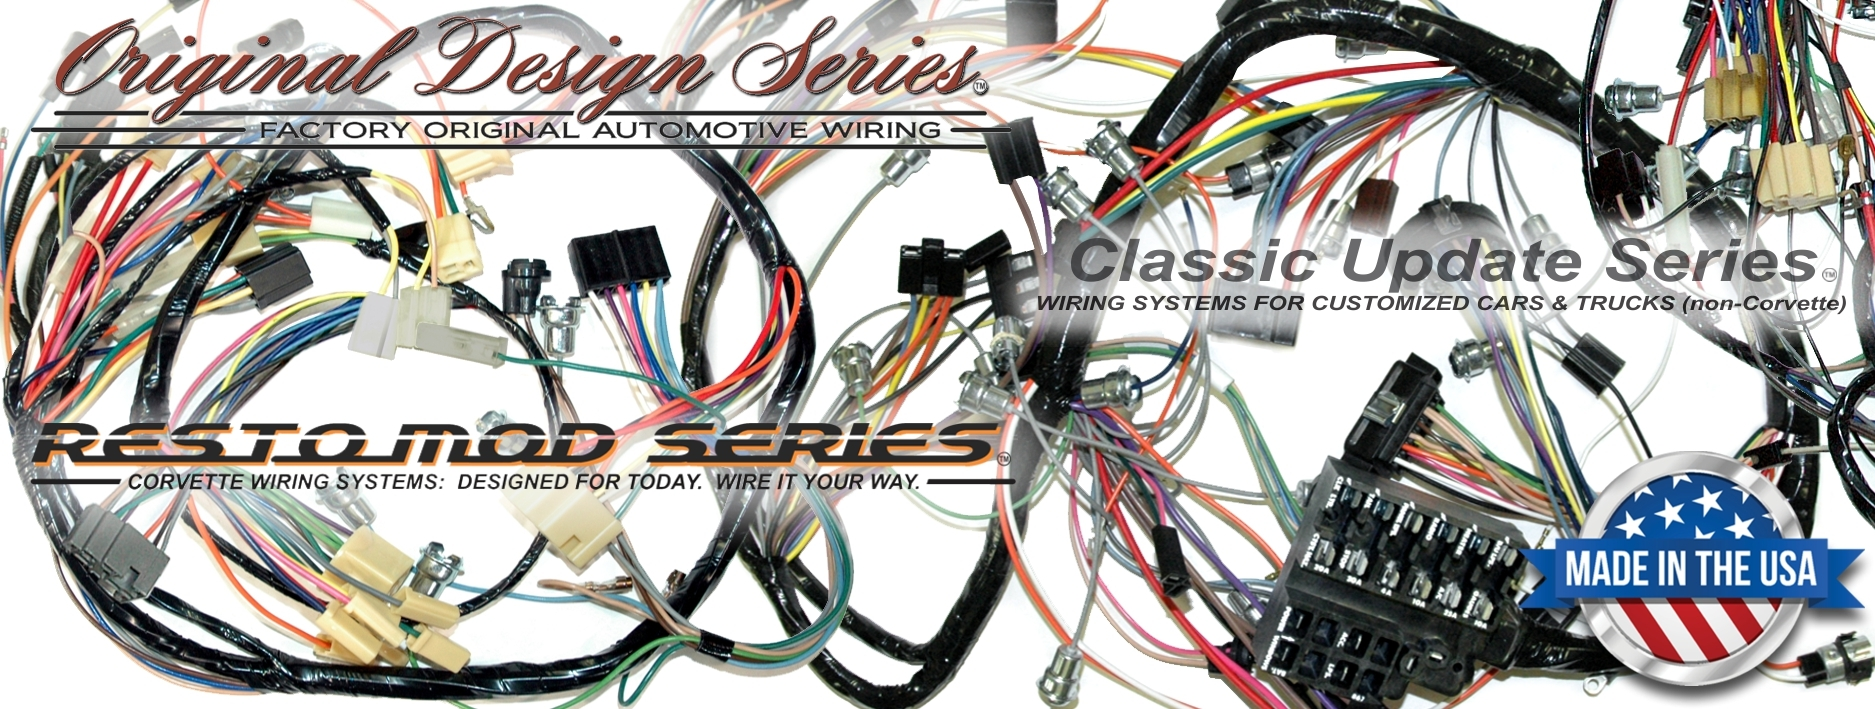 Exact Oem Reproduction Wiring Harnesses And Restomod Systems 73 Challenger Fuse Box Individual Complete